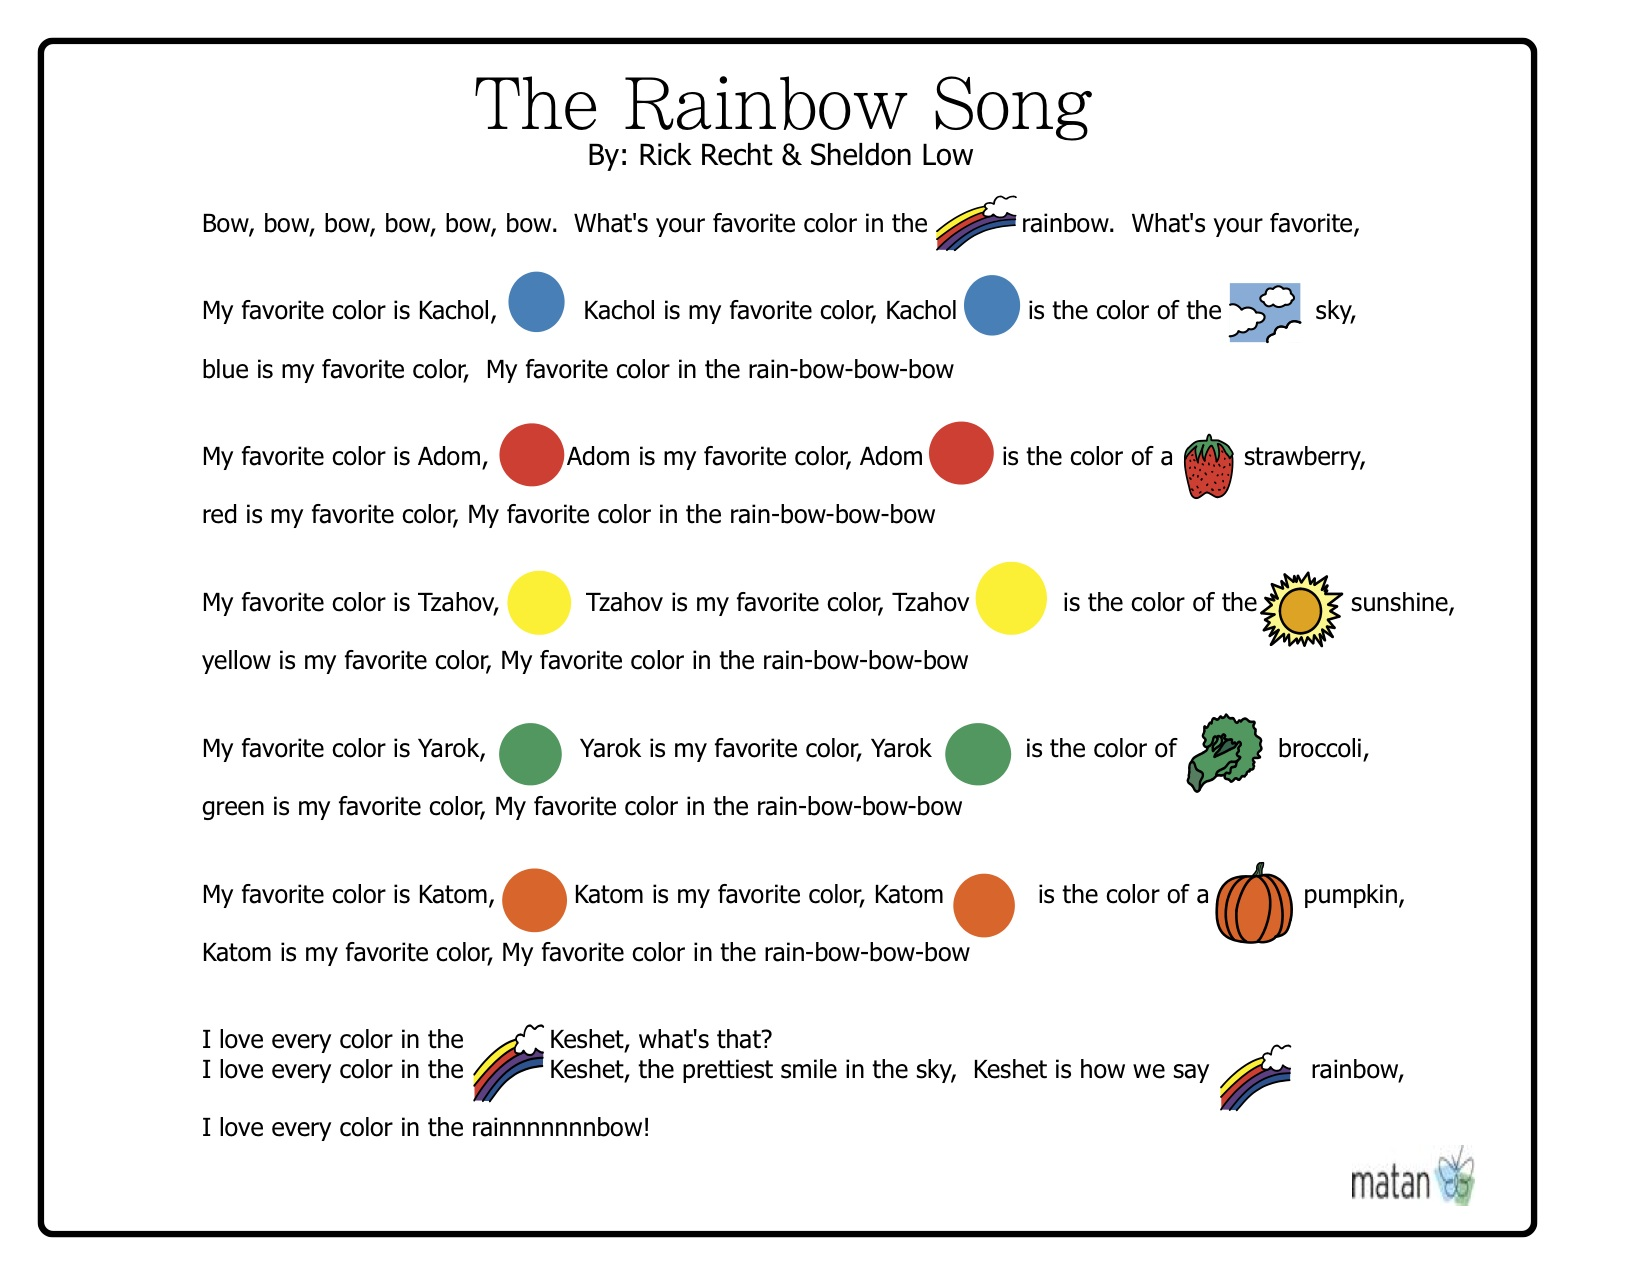 The Rainbow Song